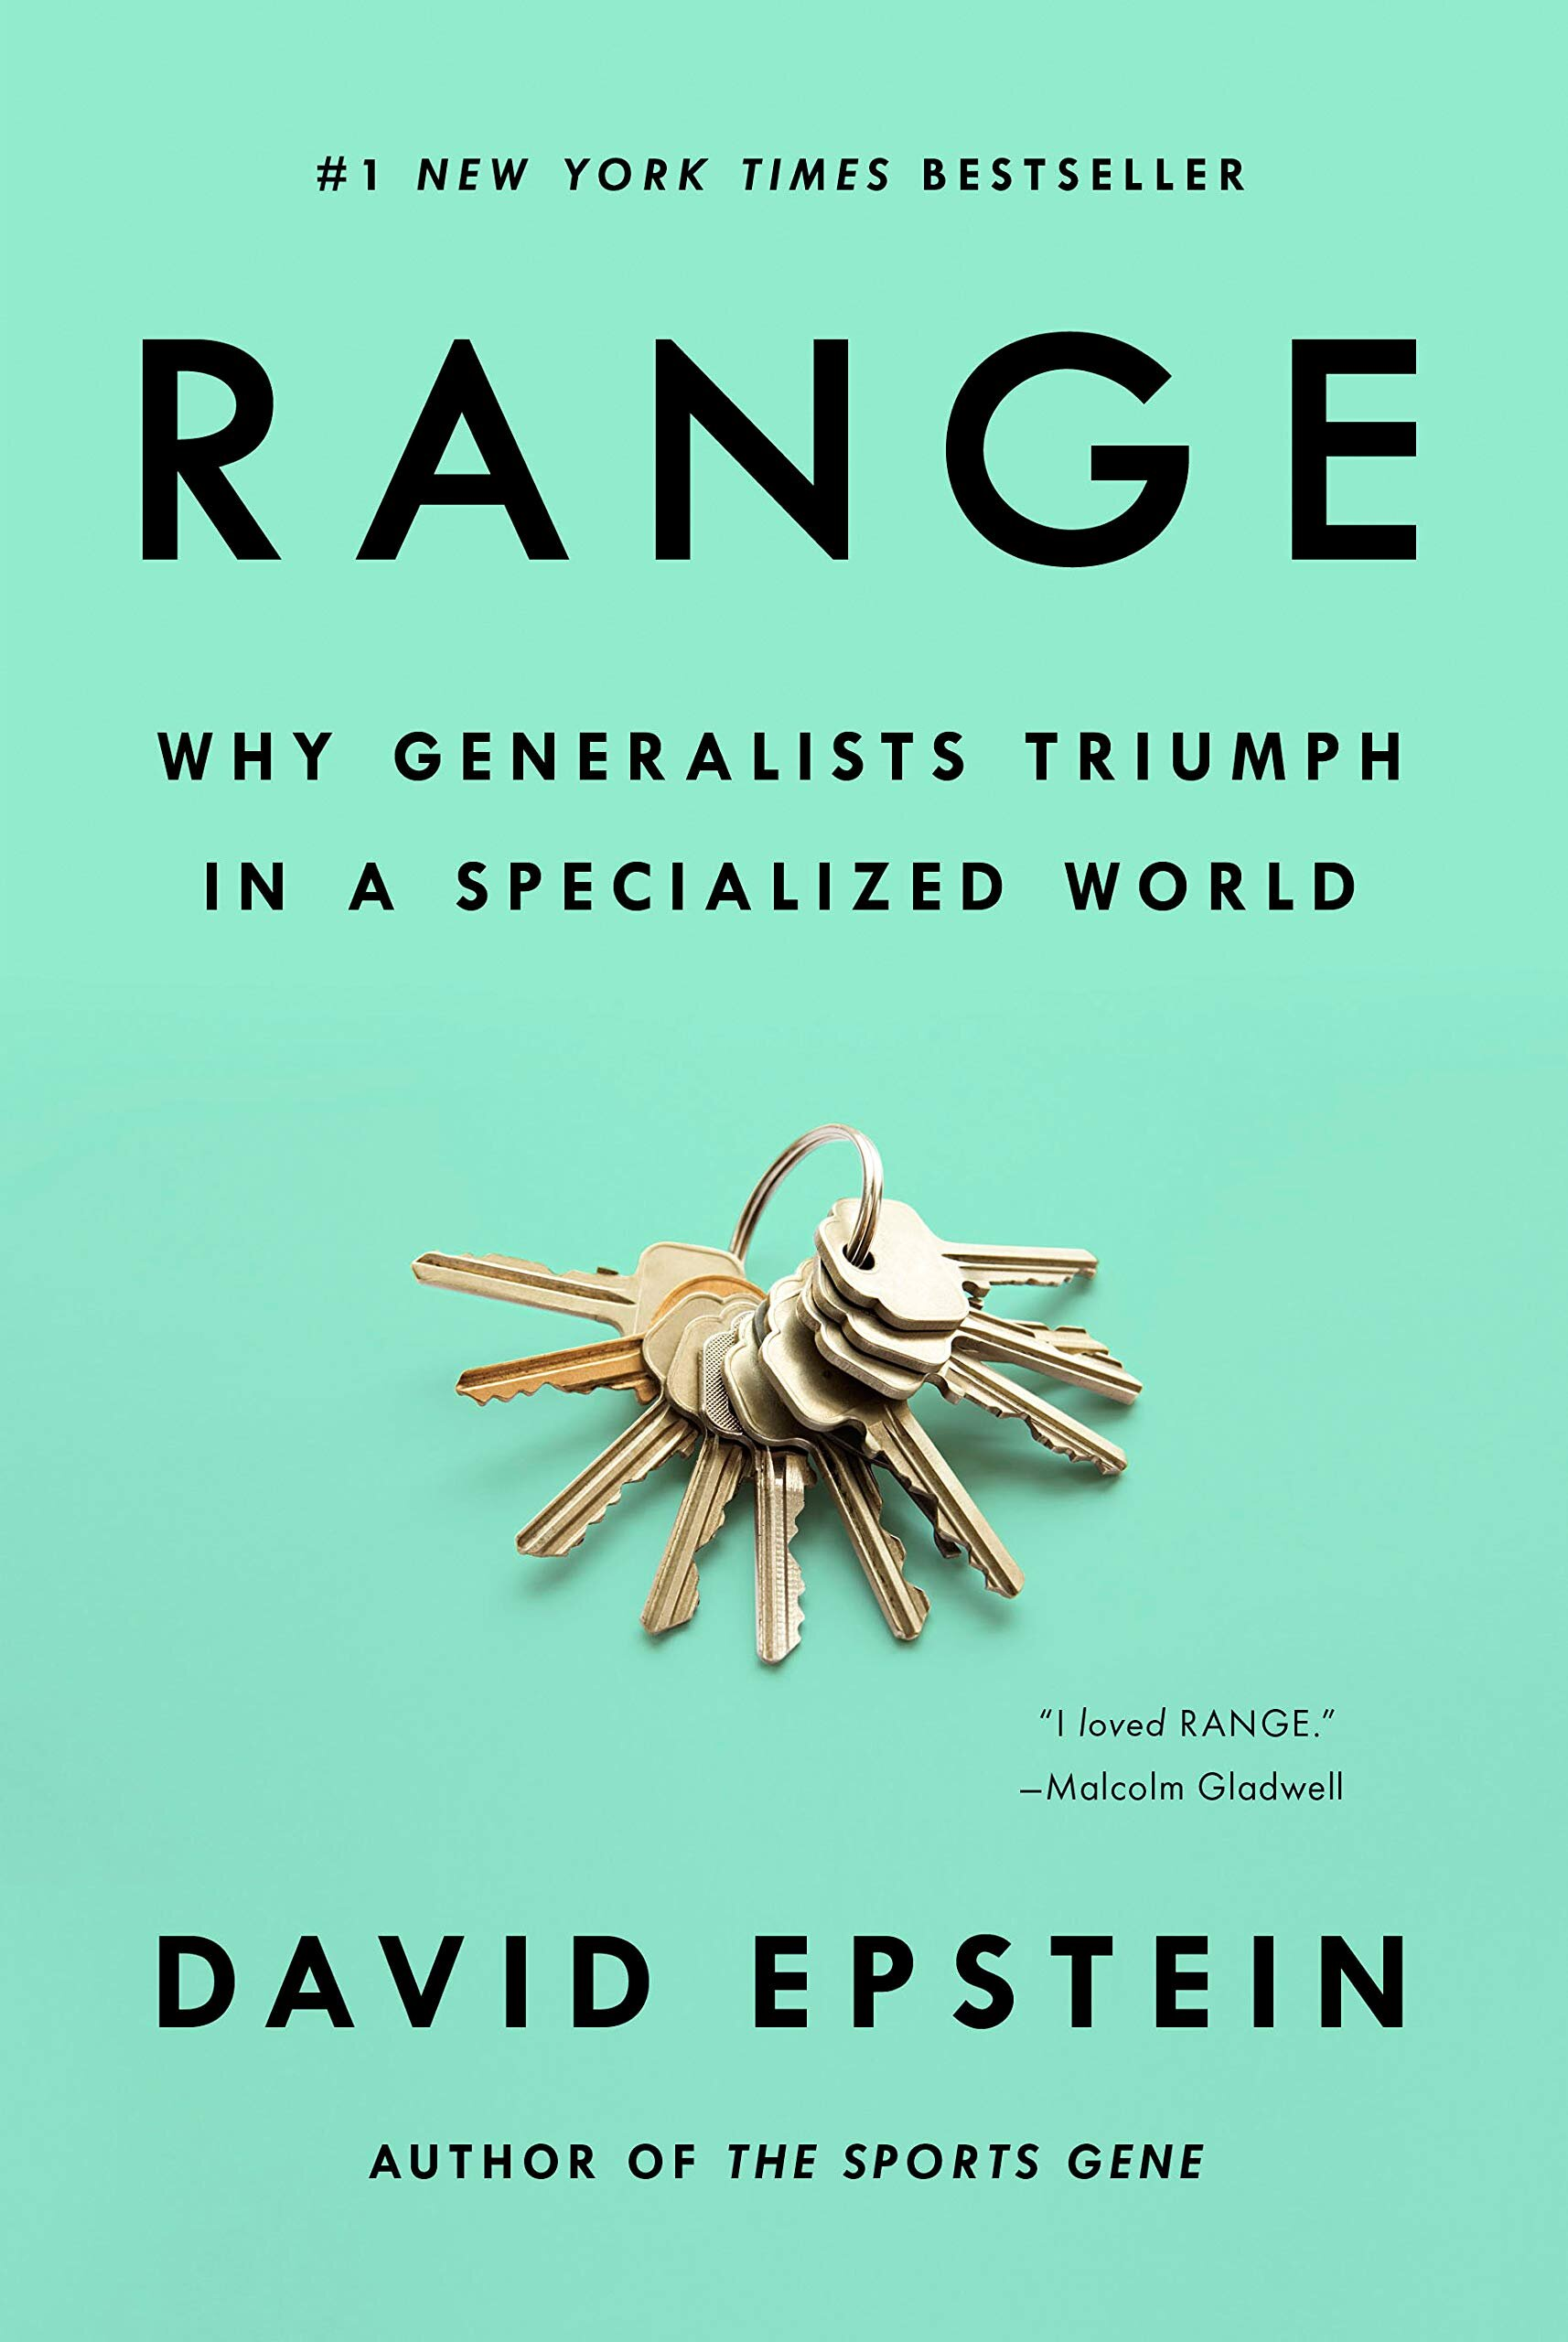 Range by David Epstein - An FW Book Review